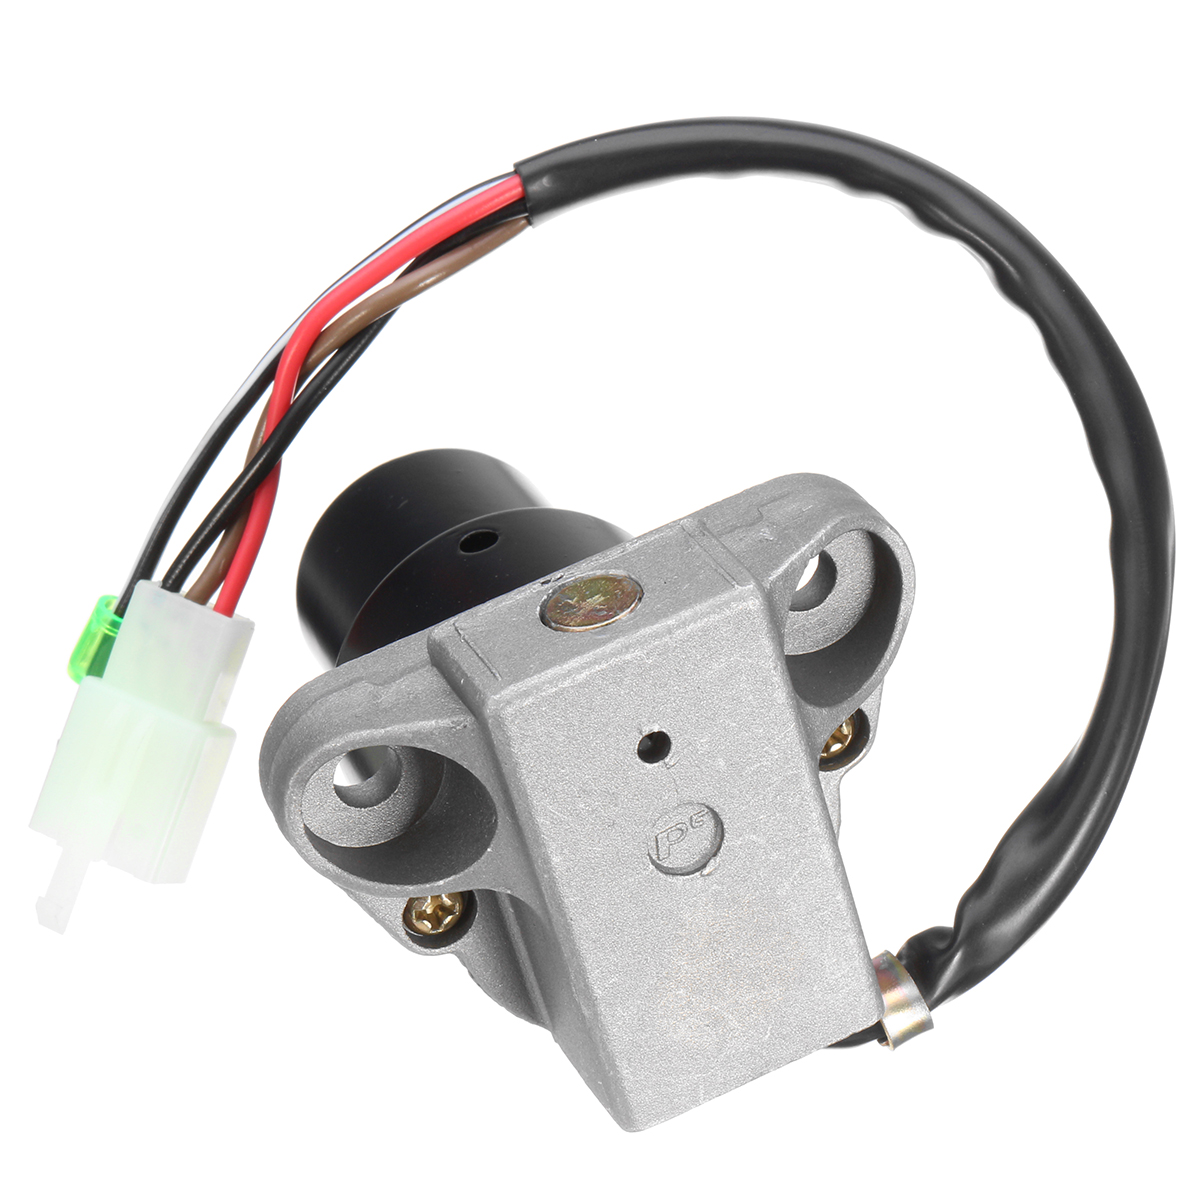 Ignition Switch Lock Assembly For Yamaha Xt250 Xt550 Xt600 1982 1989 Fzr400 Digital Control System 03af557c D0a4 4879 90a0 Ab24b280d5f8